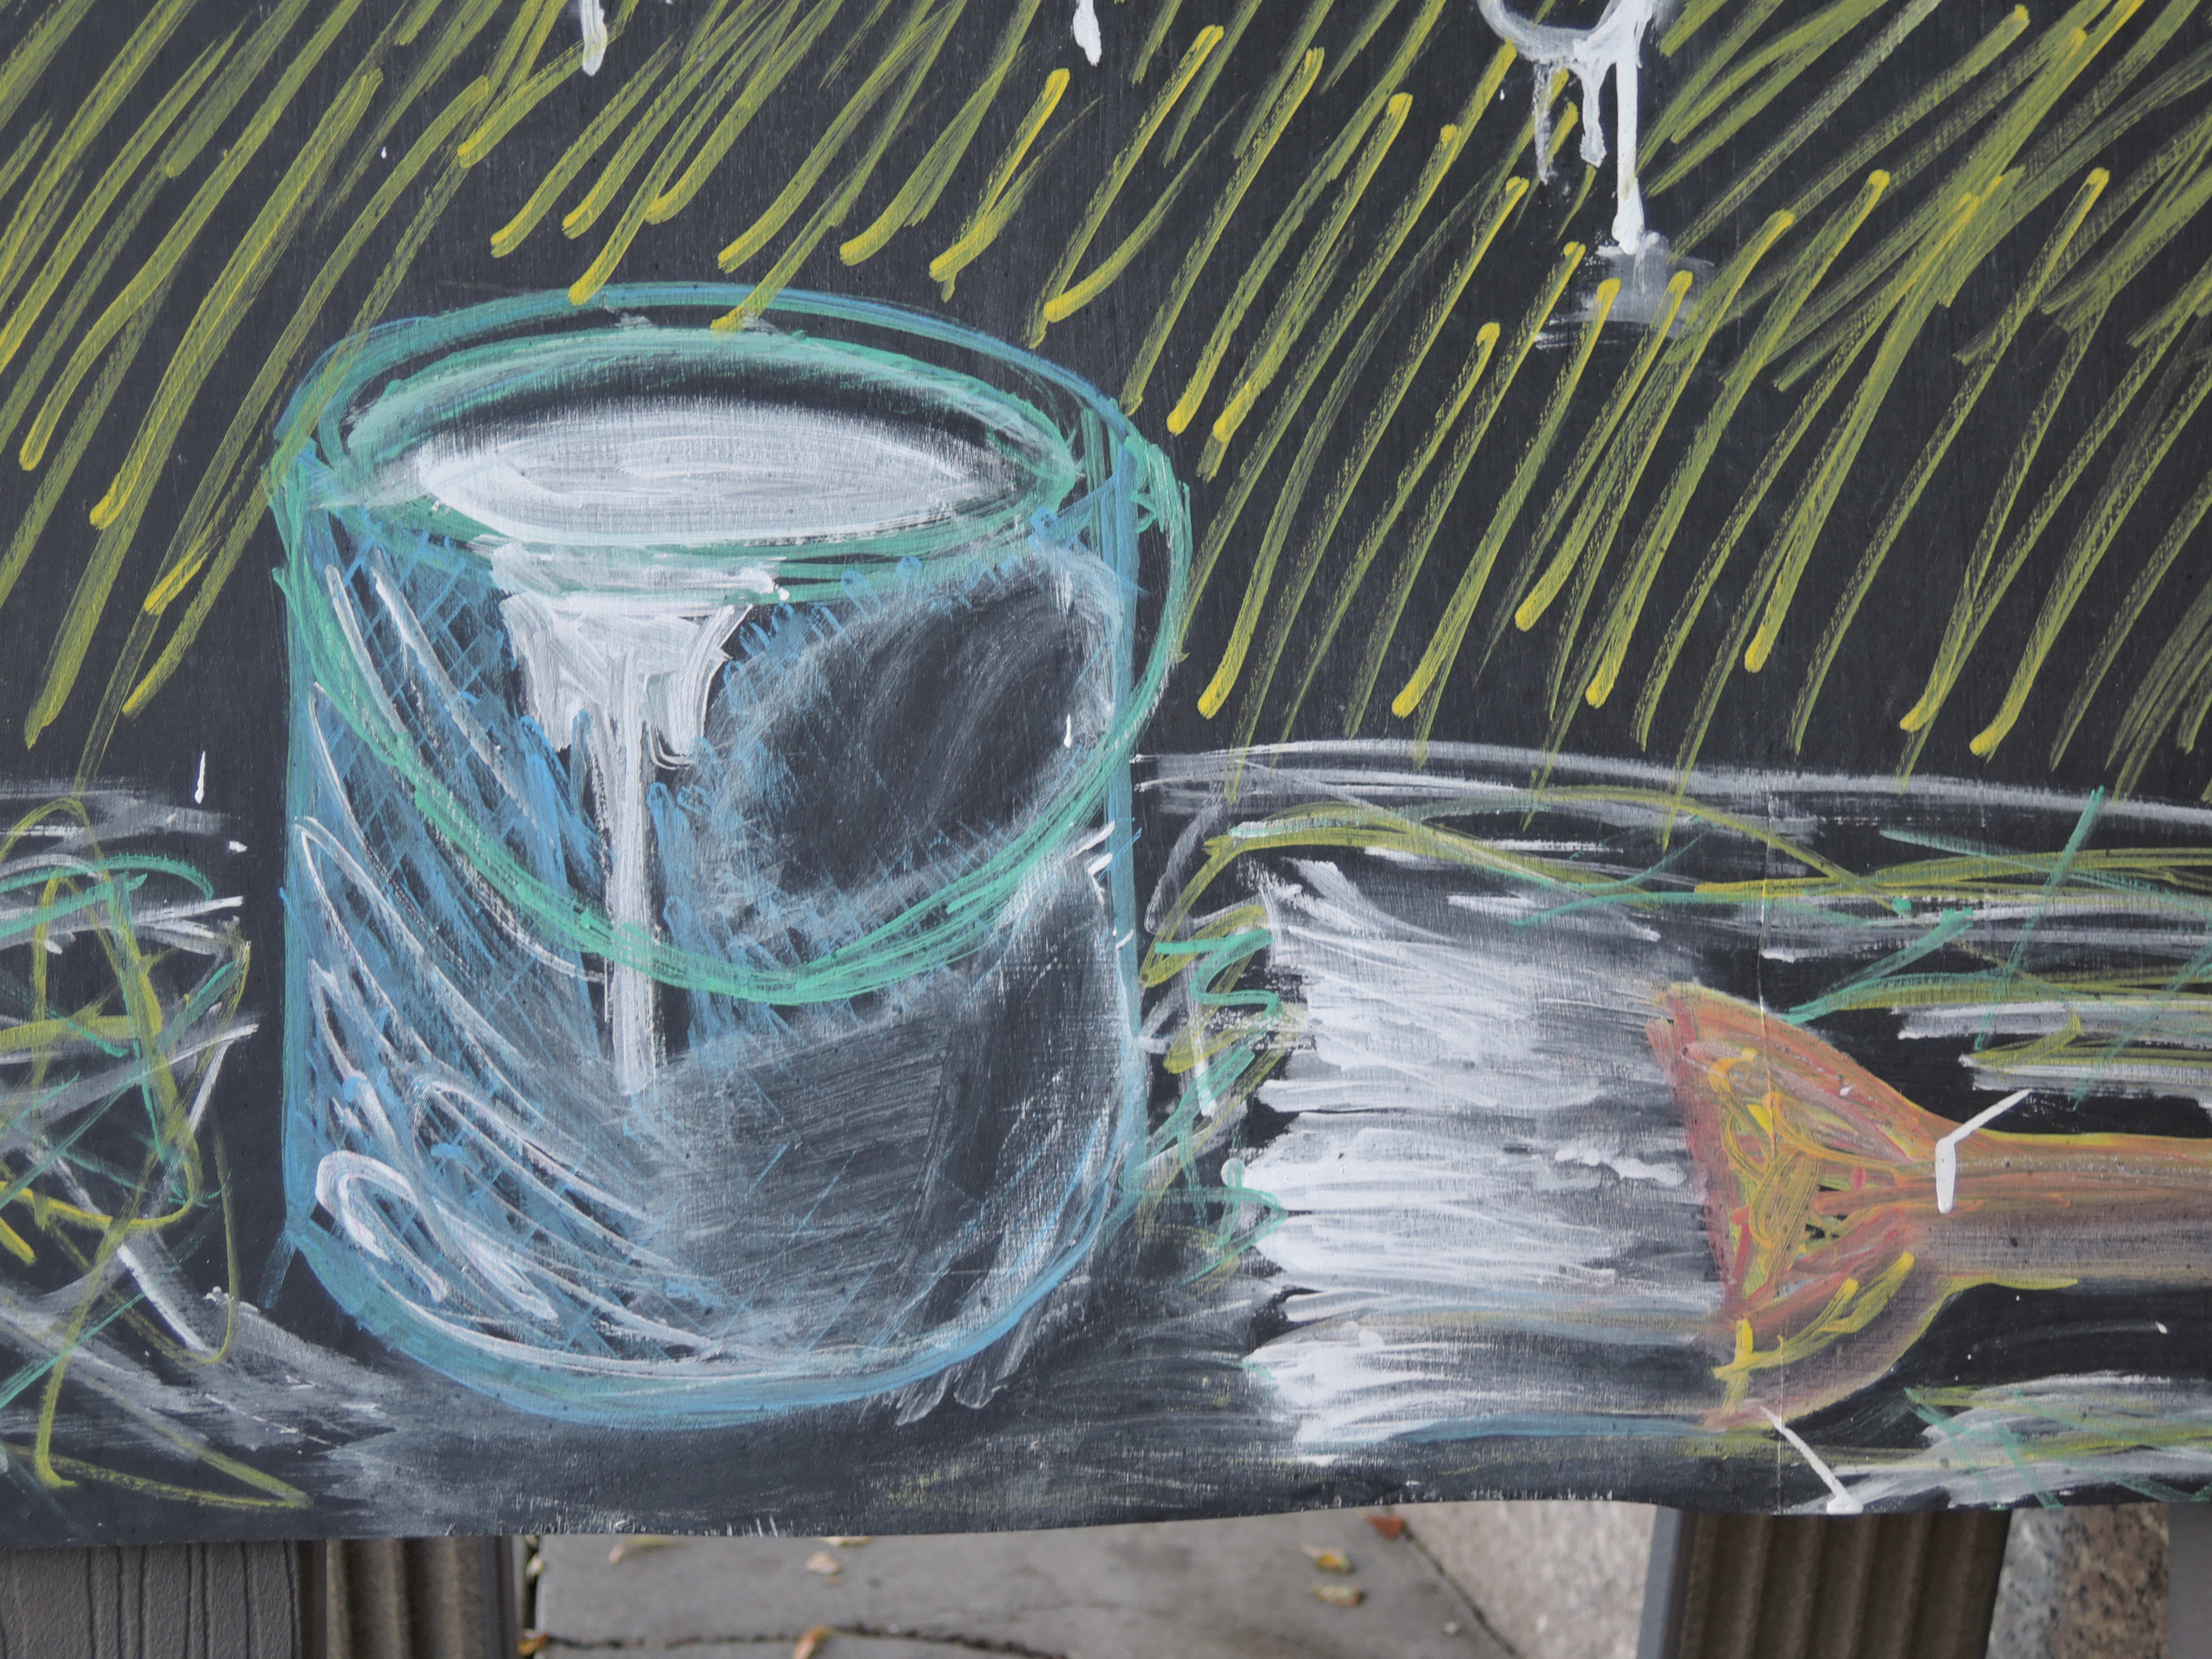 A sample photo of a chalk drawing taken by the Nikon Coolpix P340.